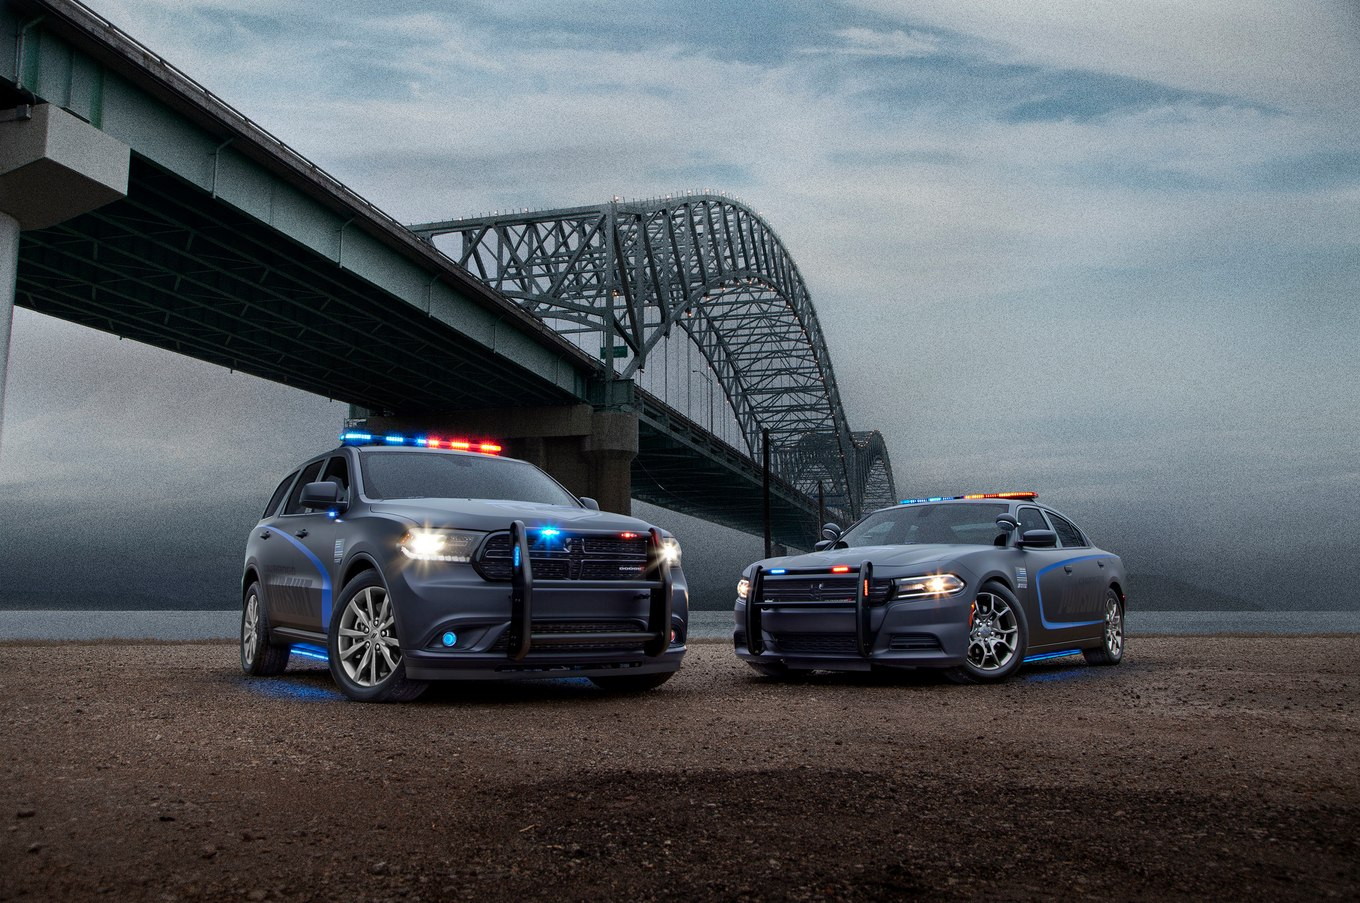 2018 Michigan State Police Vehicle Testing >> 2018 Dodge Durango Pursuit Fights Crime With HEMI V8 Power - autoevolution